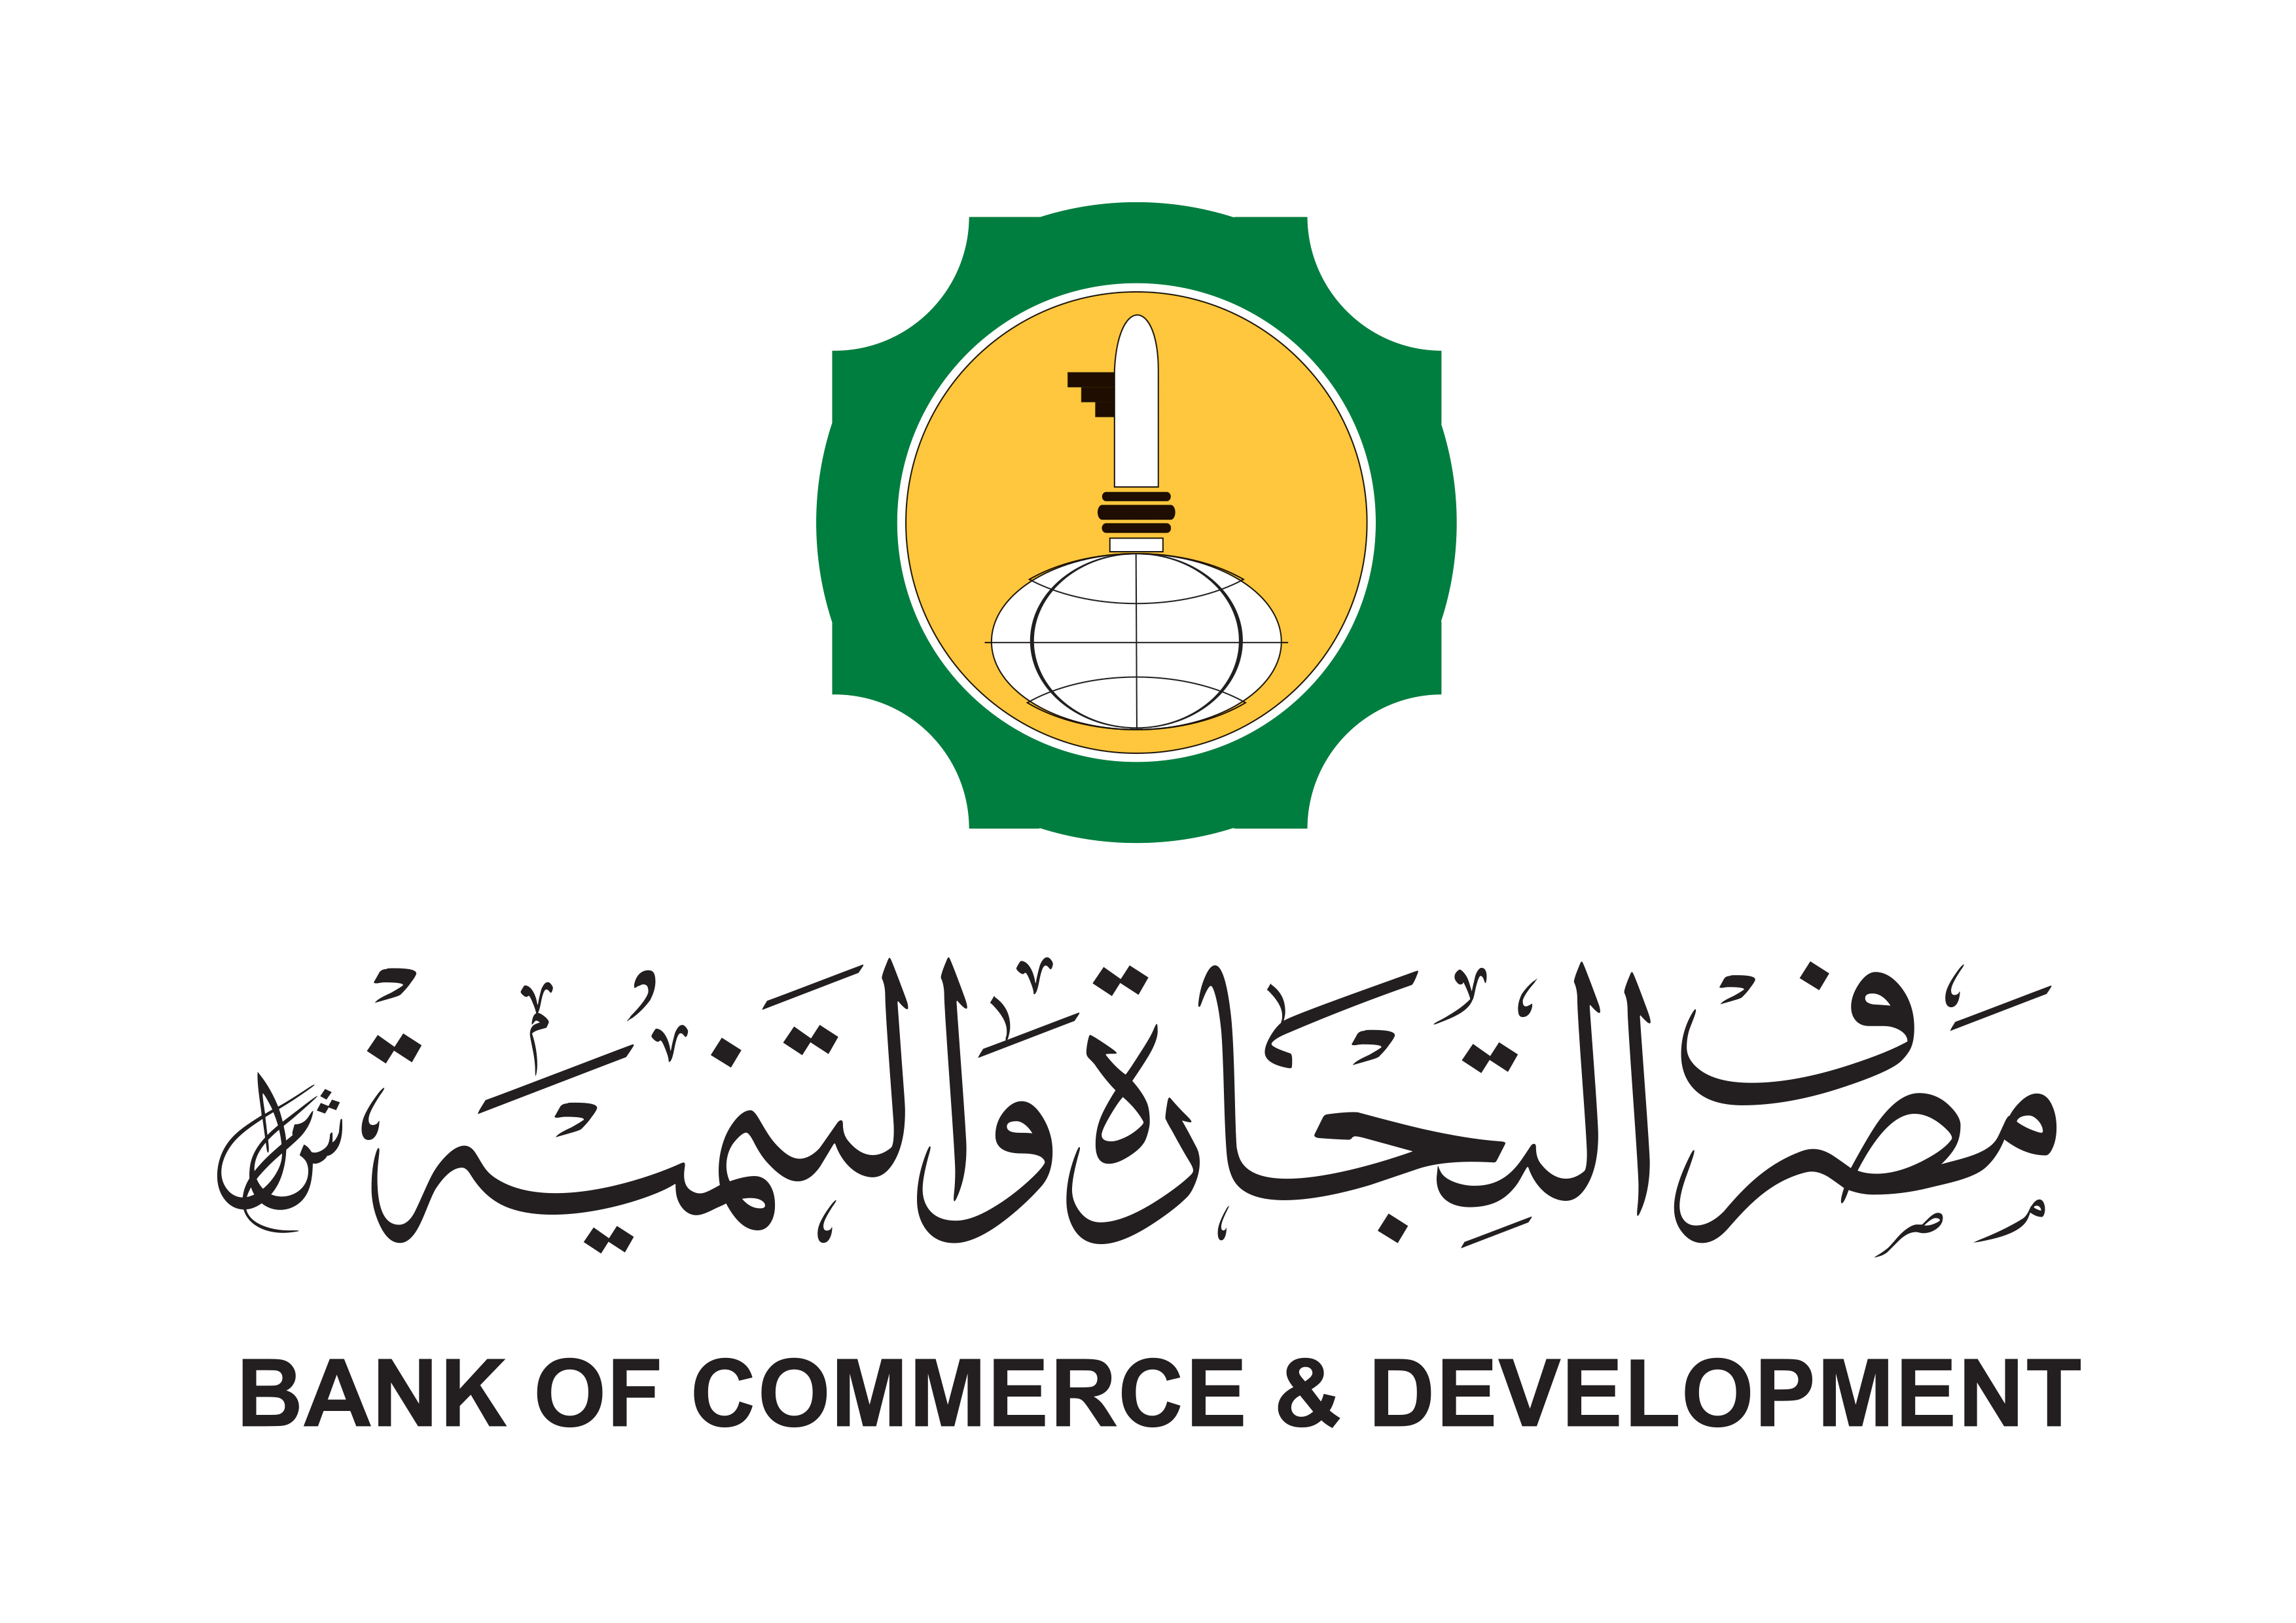 Bank of commerce & development